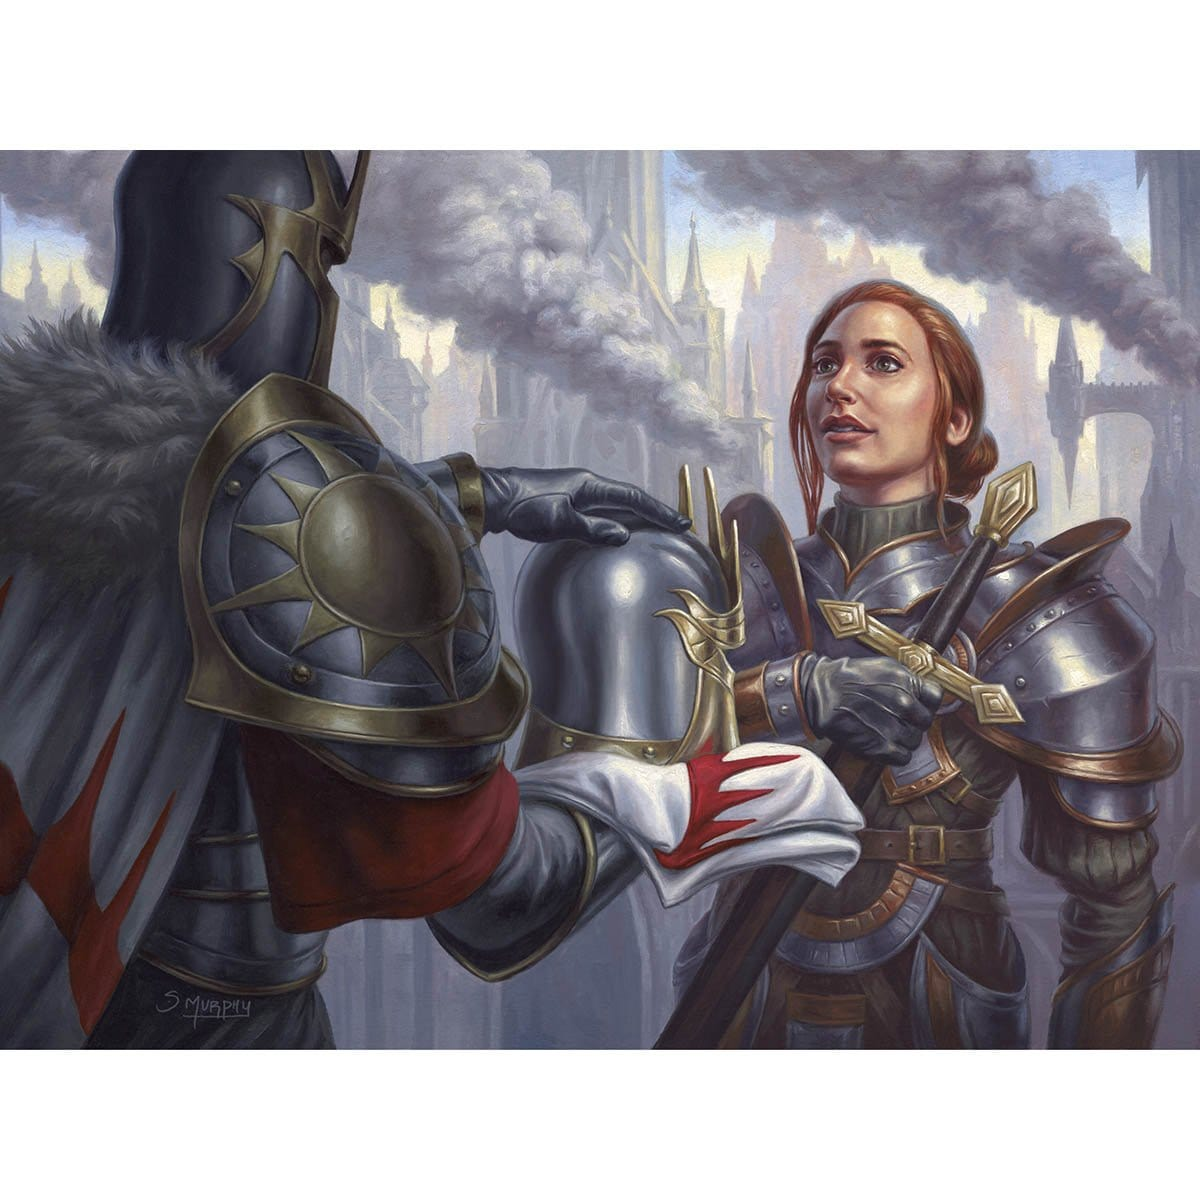 Battlefield Promotion Print - Print - Original Magic Art - Accessories for Magic the Gathering and other card games